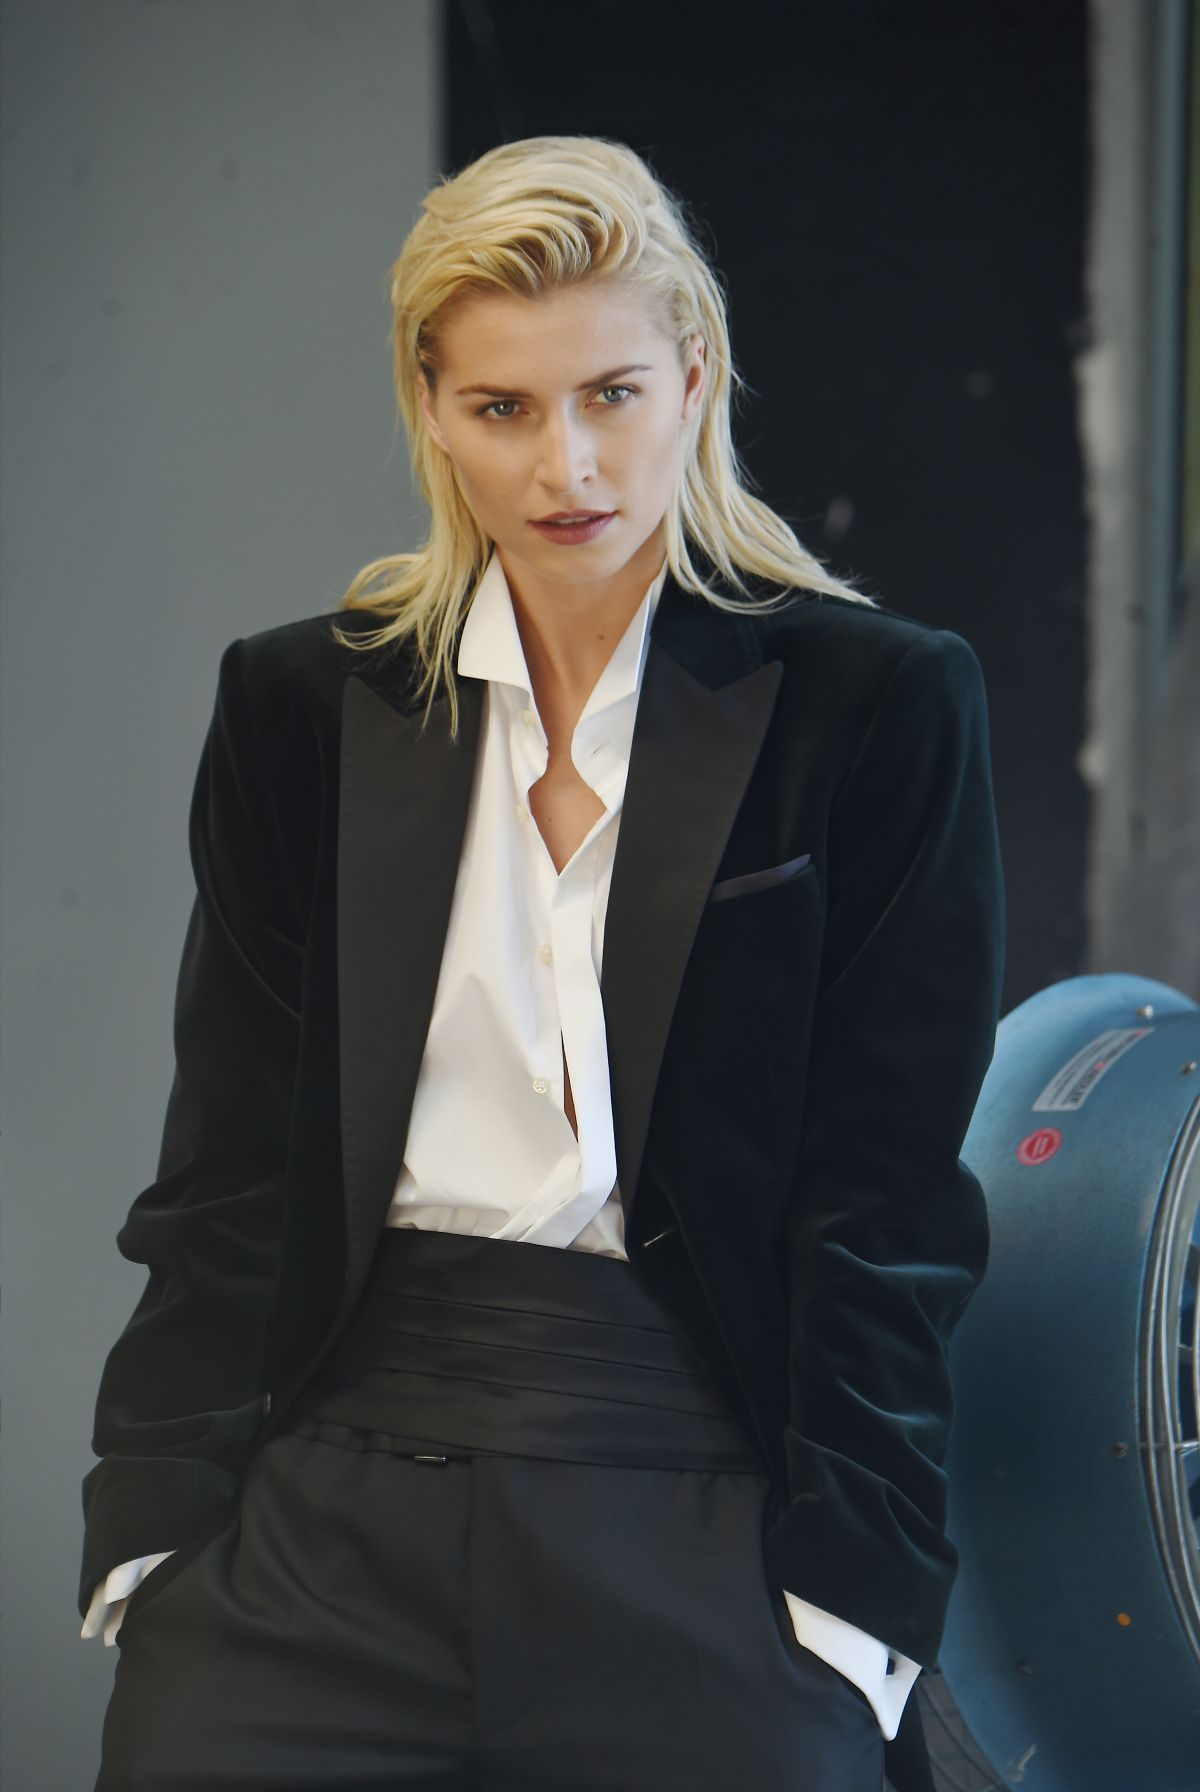 Lena Gercke On The Set Of A Photoshoot For Joop In Munich